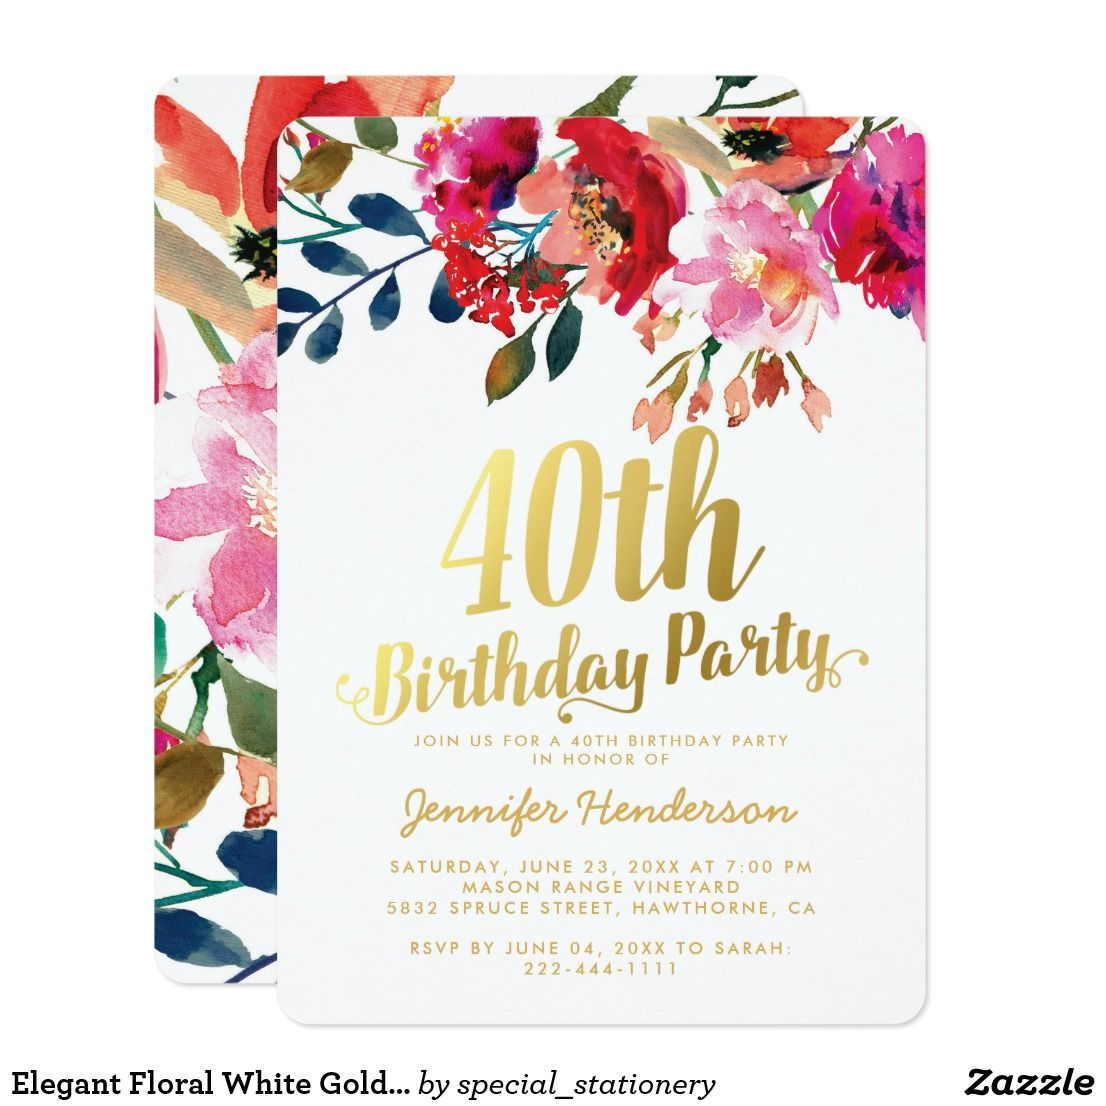 Elegant Floral White Gold 40th Birthday Party Card | Best ...